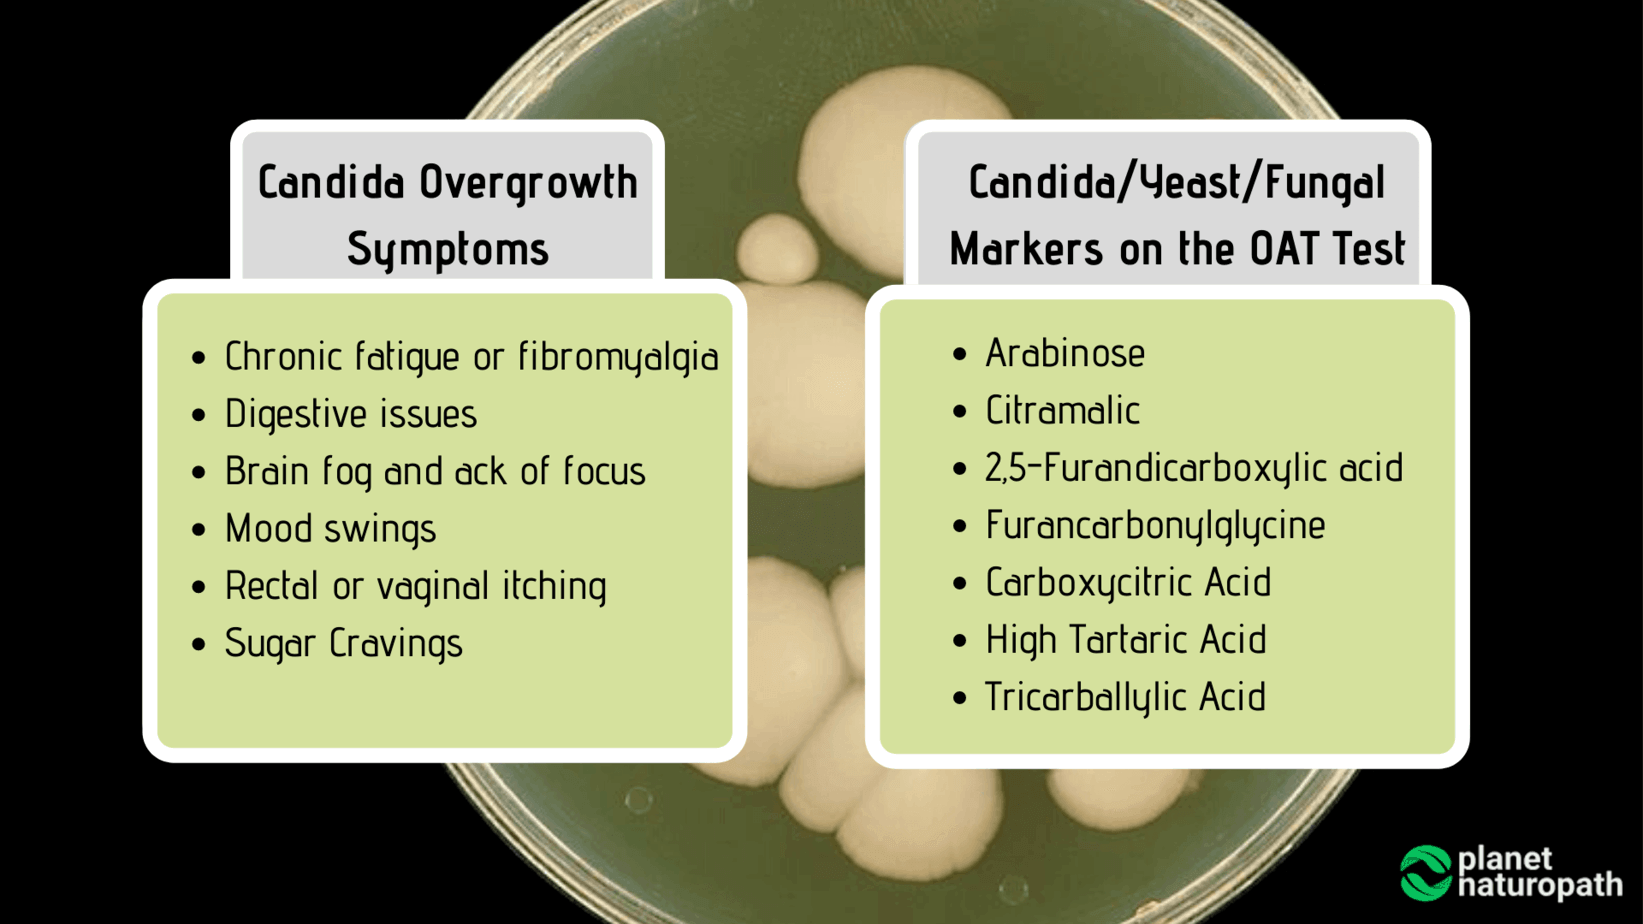 Candida-and-Fungal-Markers-on-the-OAT-Test